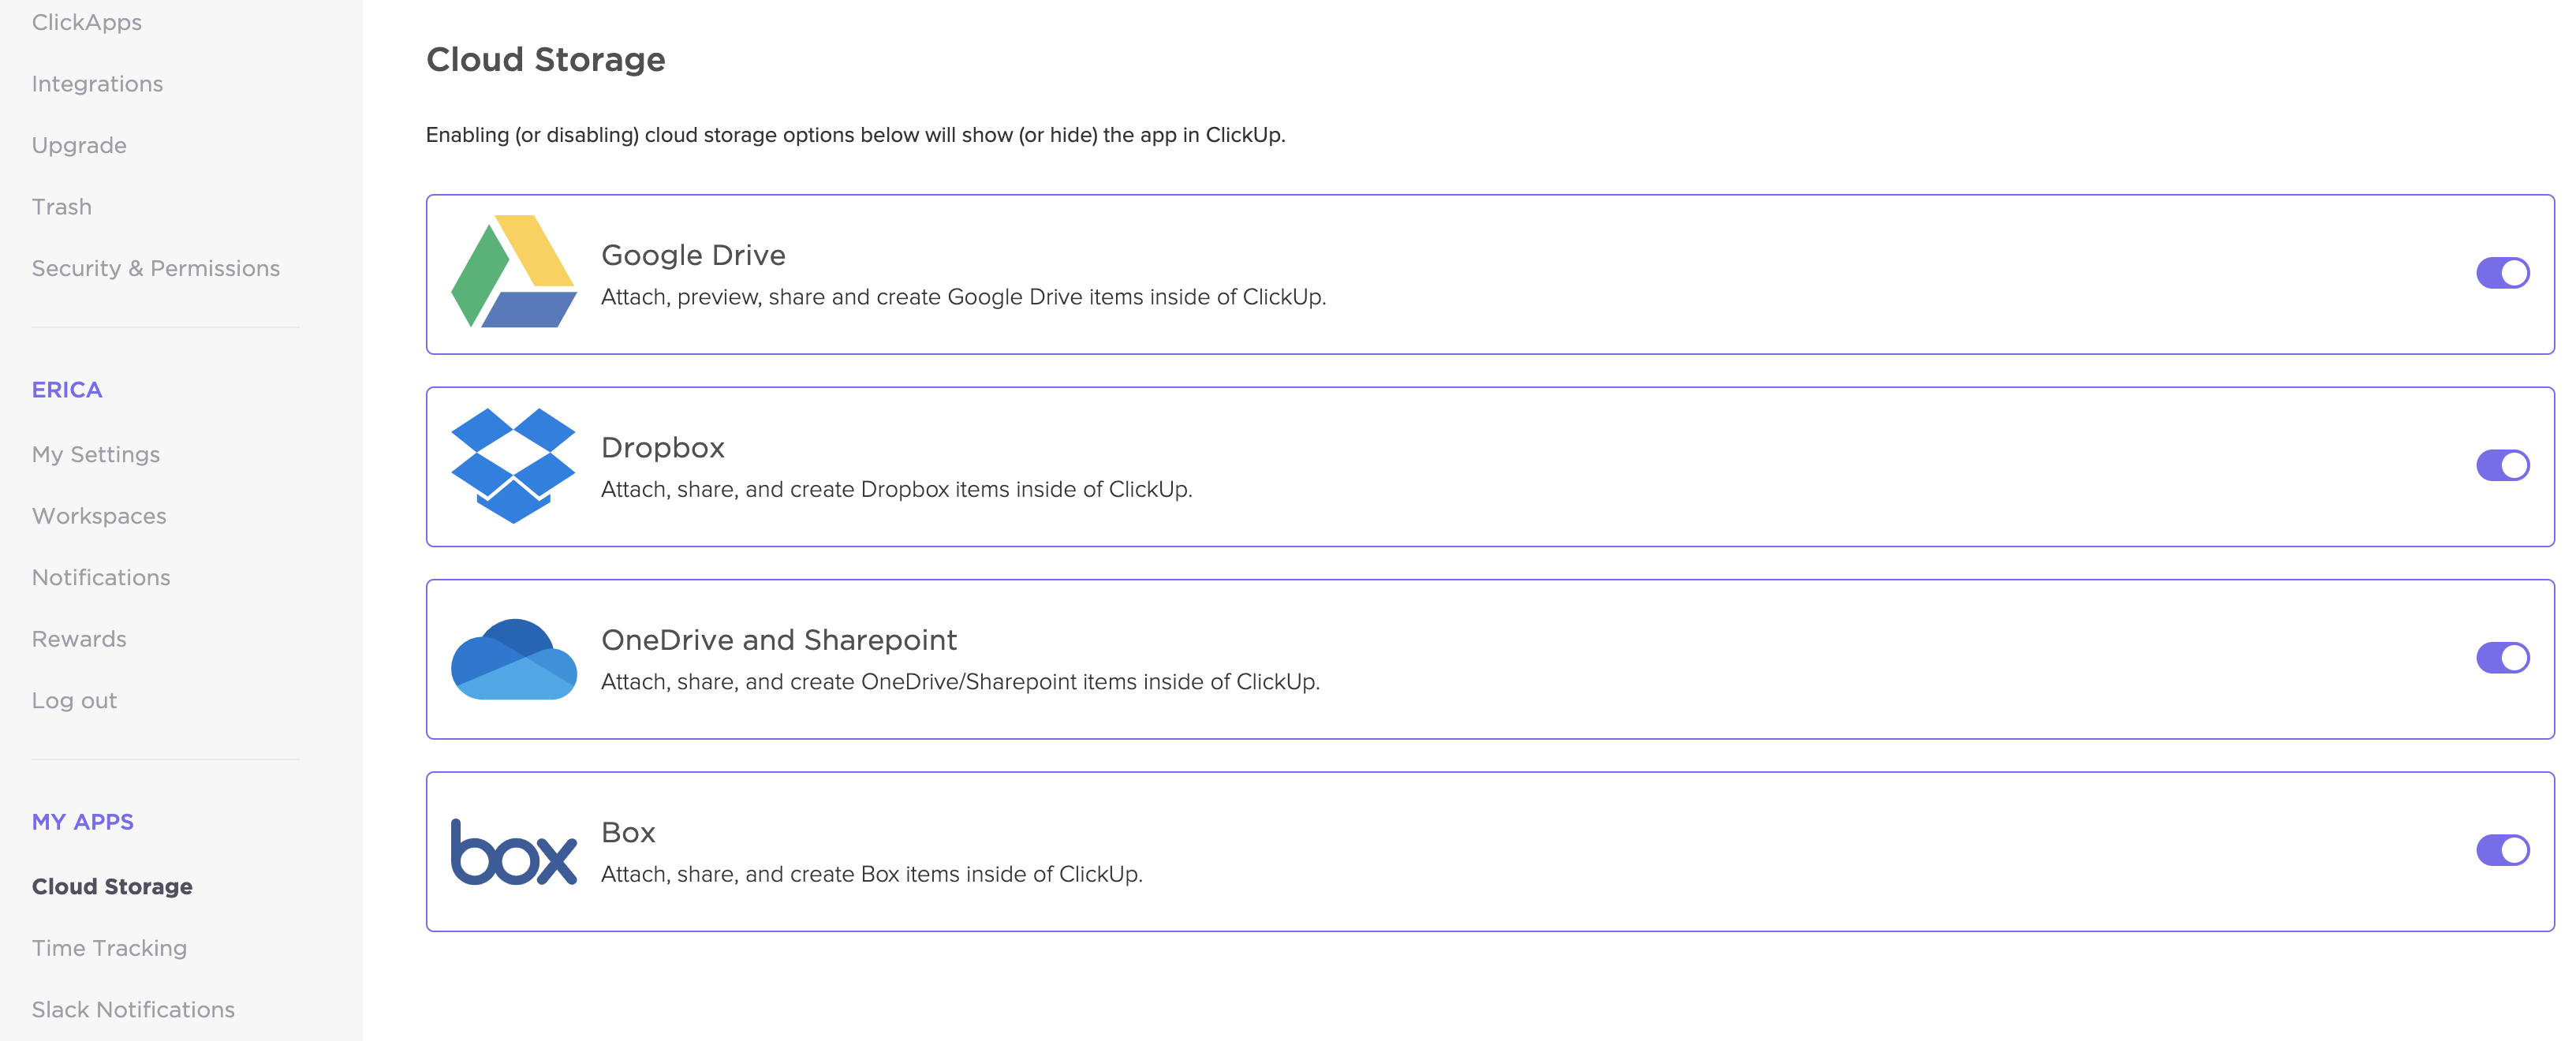 A view of the cloud storage section of ClickUp.